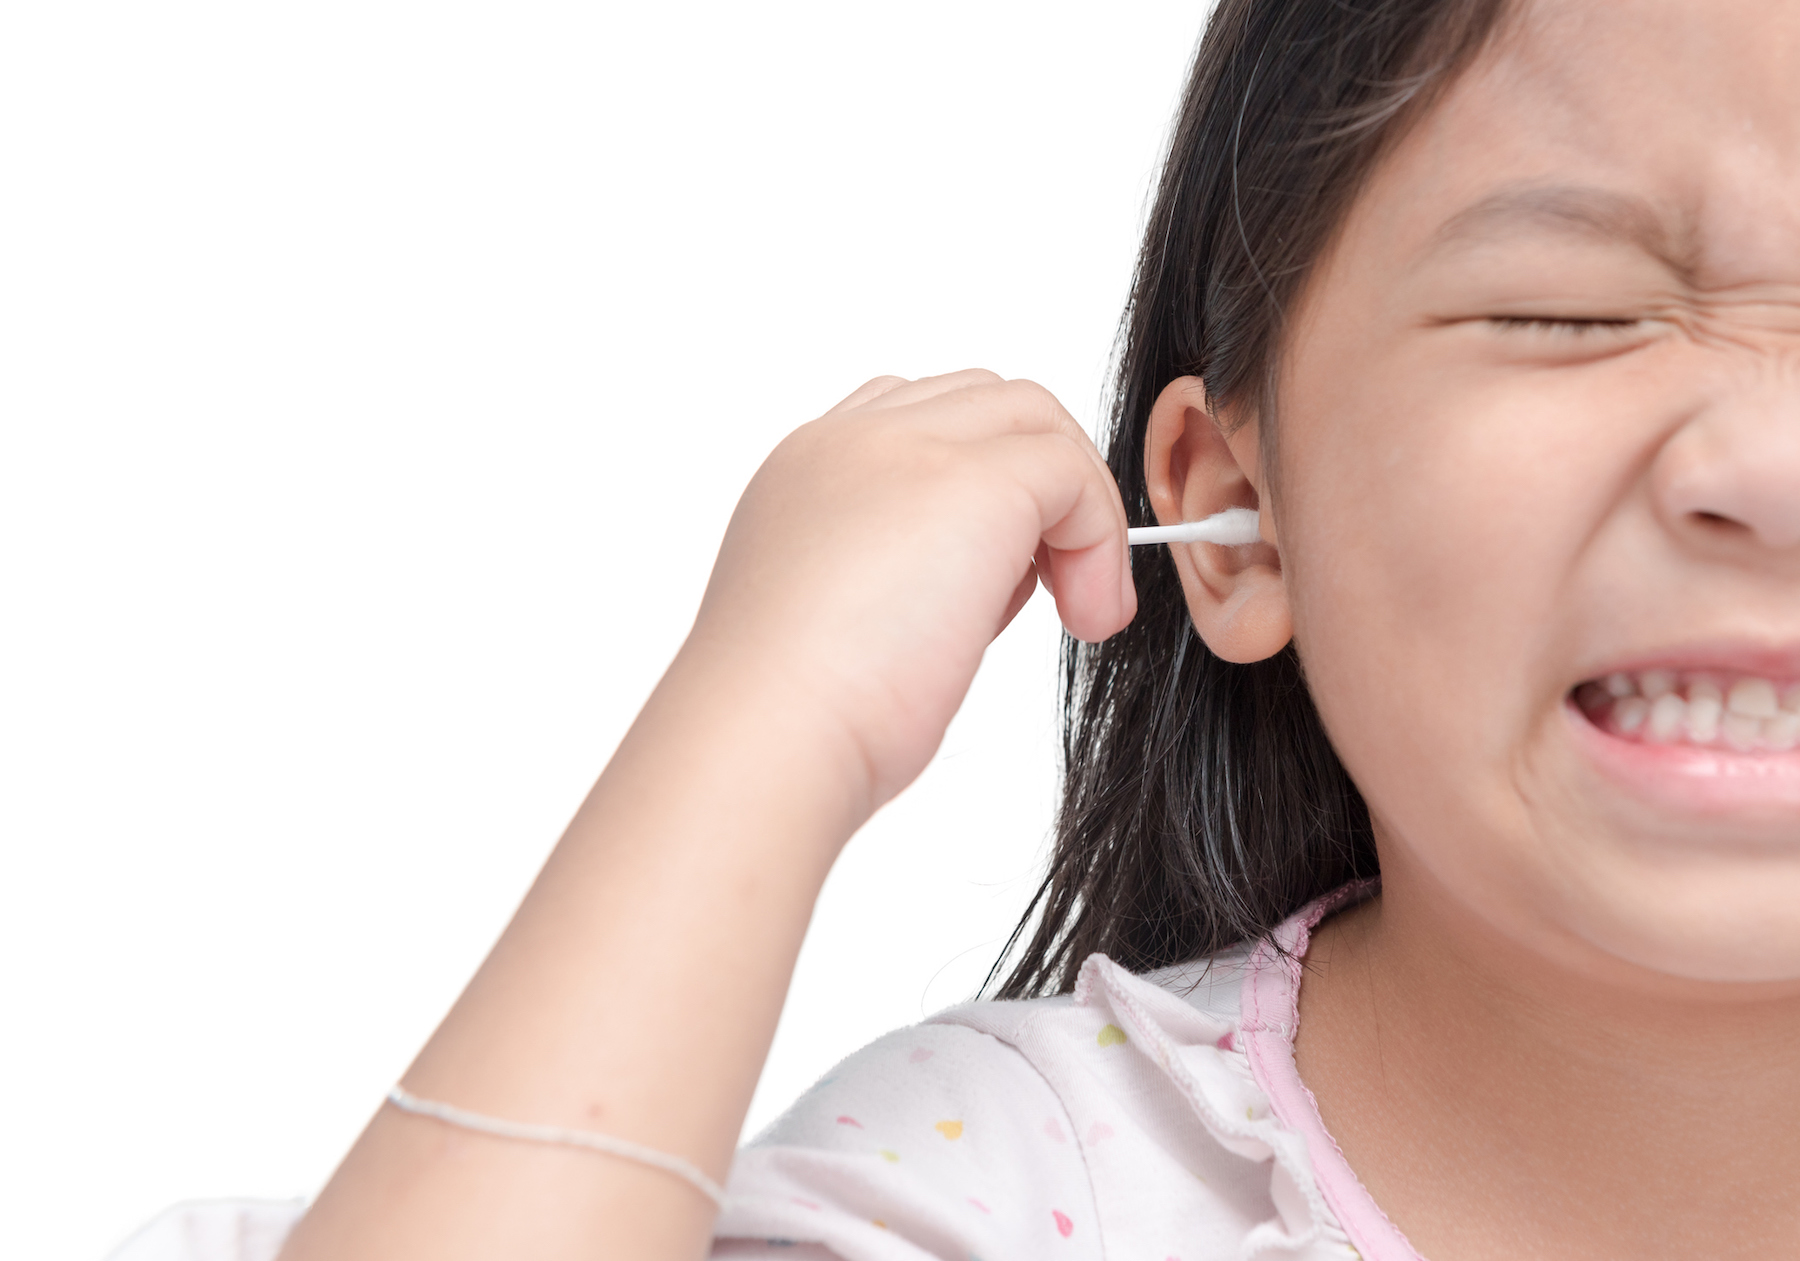 Girl sticking cotton swab in ear